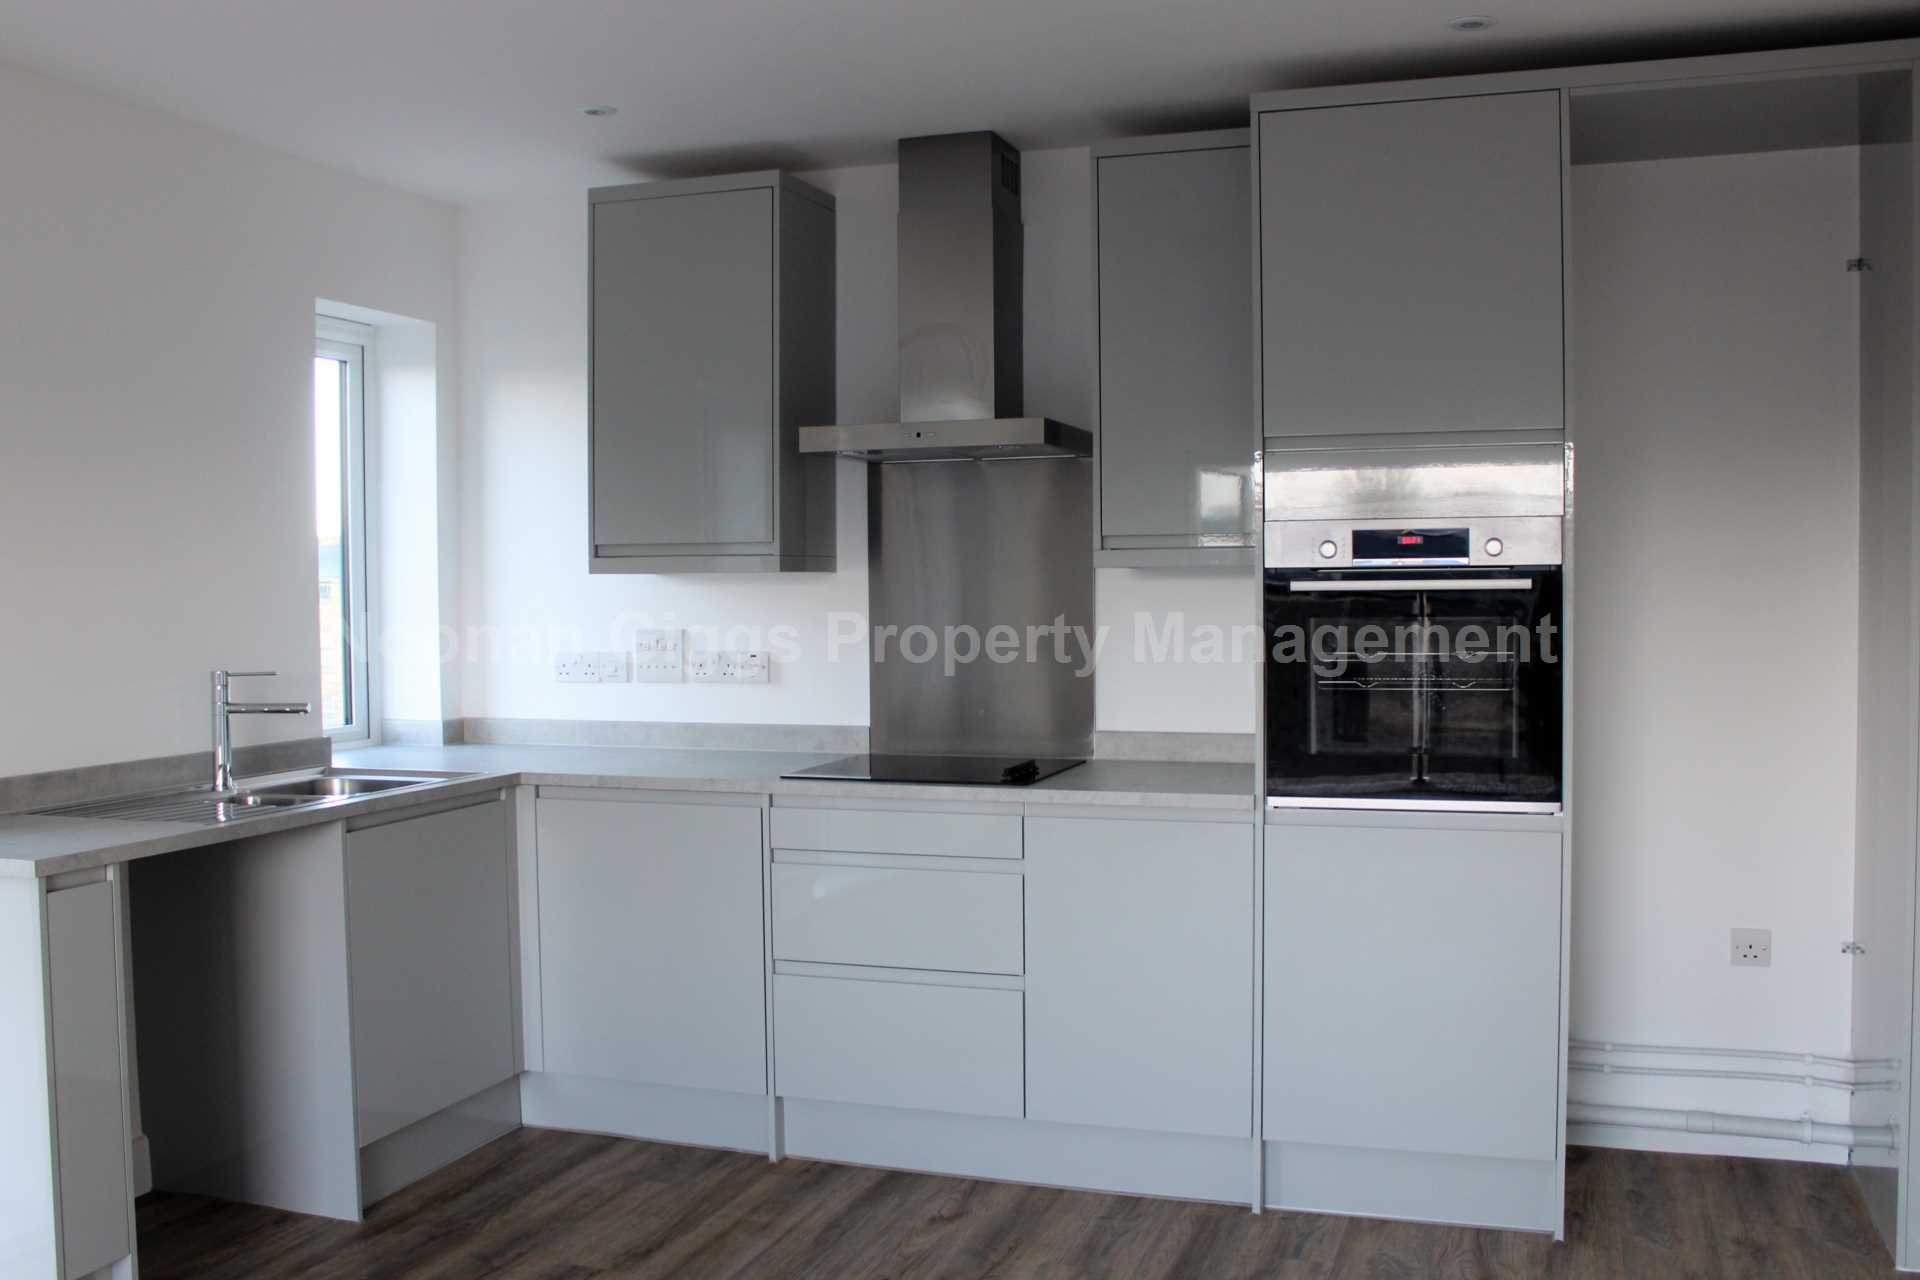 2 bed apartment to rent in Drovers Place, Huntingdon  - Property Image 2